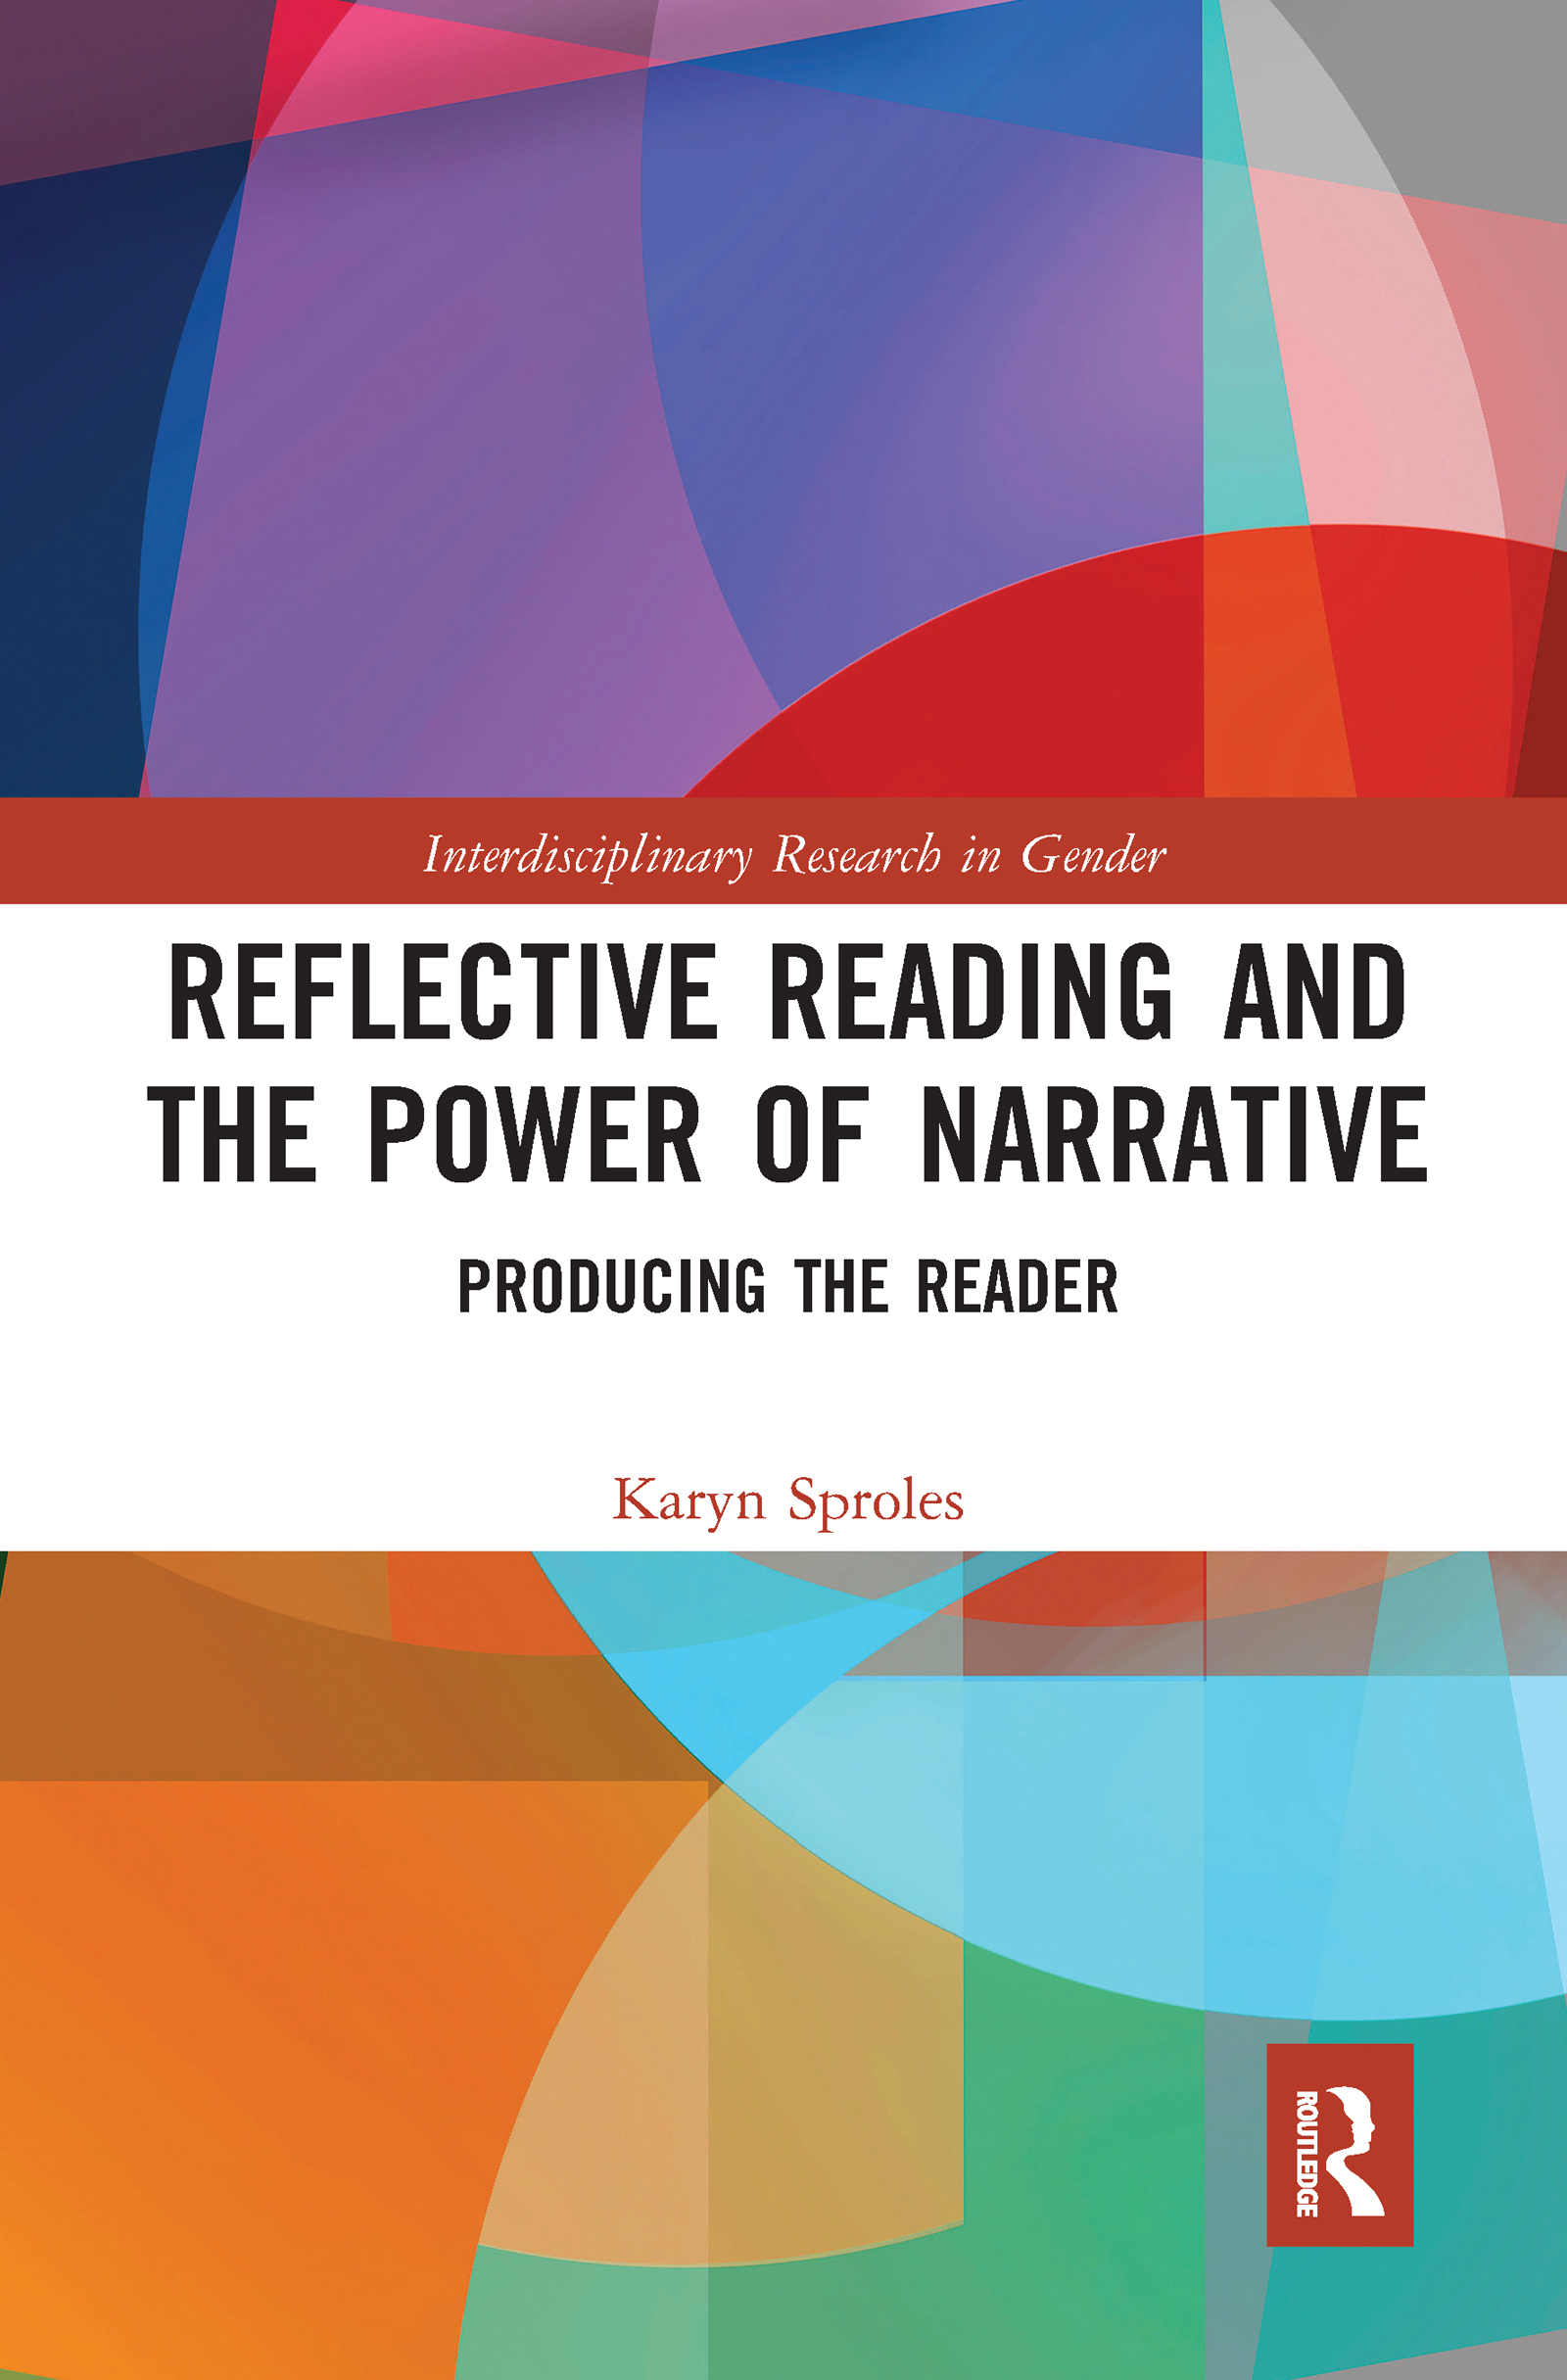 Reflective Reading and the Power of Narrative